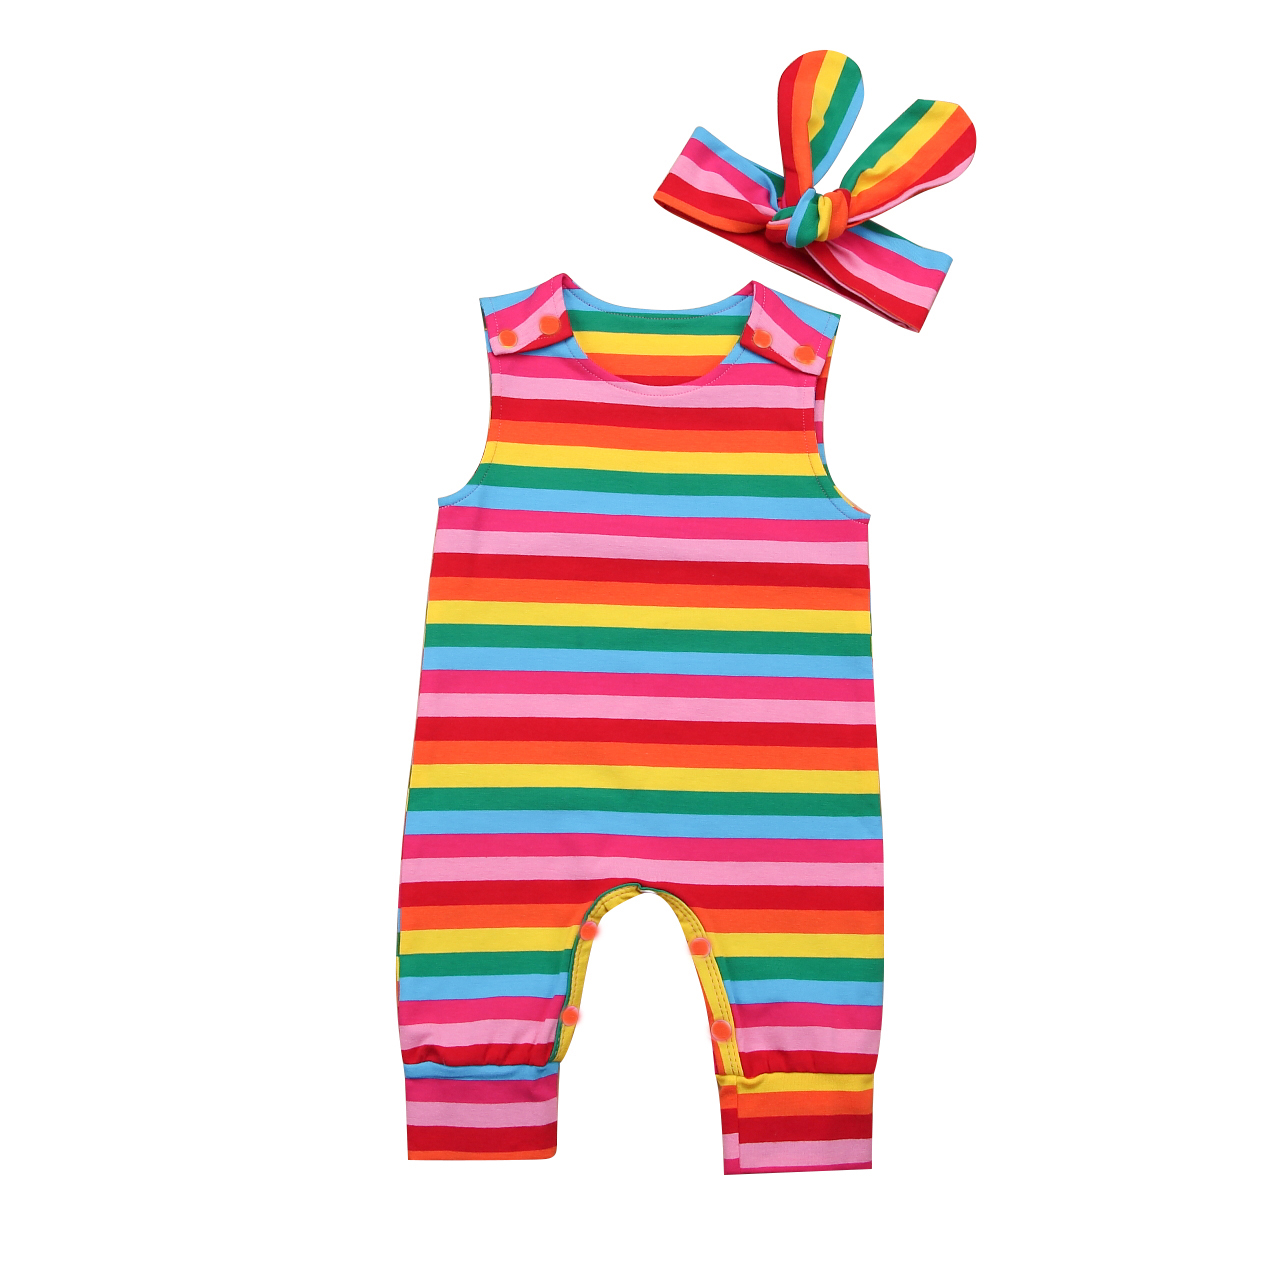 Cute Newborn Baby Girls Rainbow Striped Sleeveless   Romper   Jumpsuit Clothes Outfits